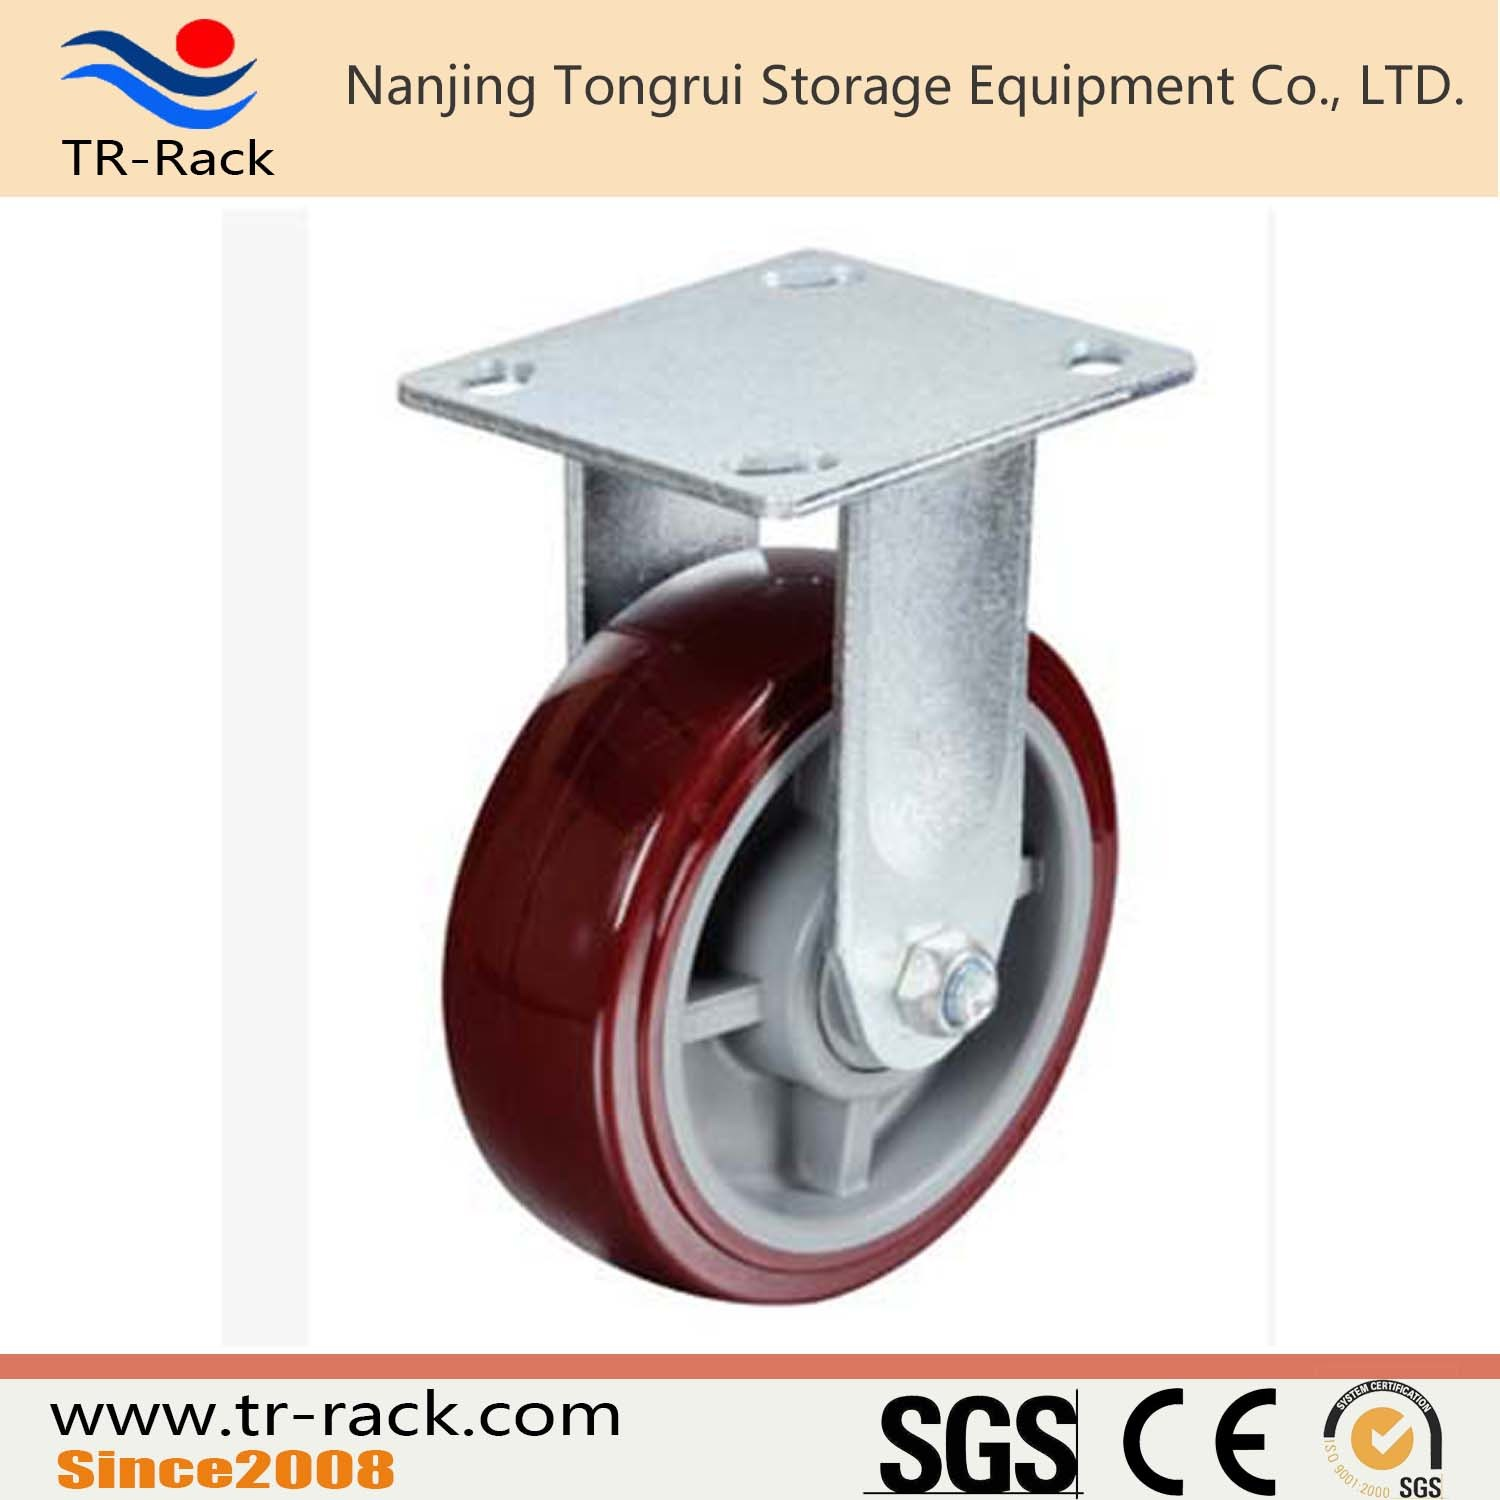 Medium Duty Rubber Wheel Casters with Customized Size